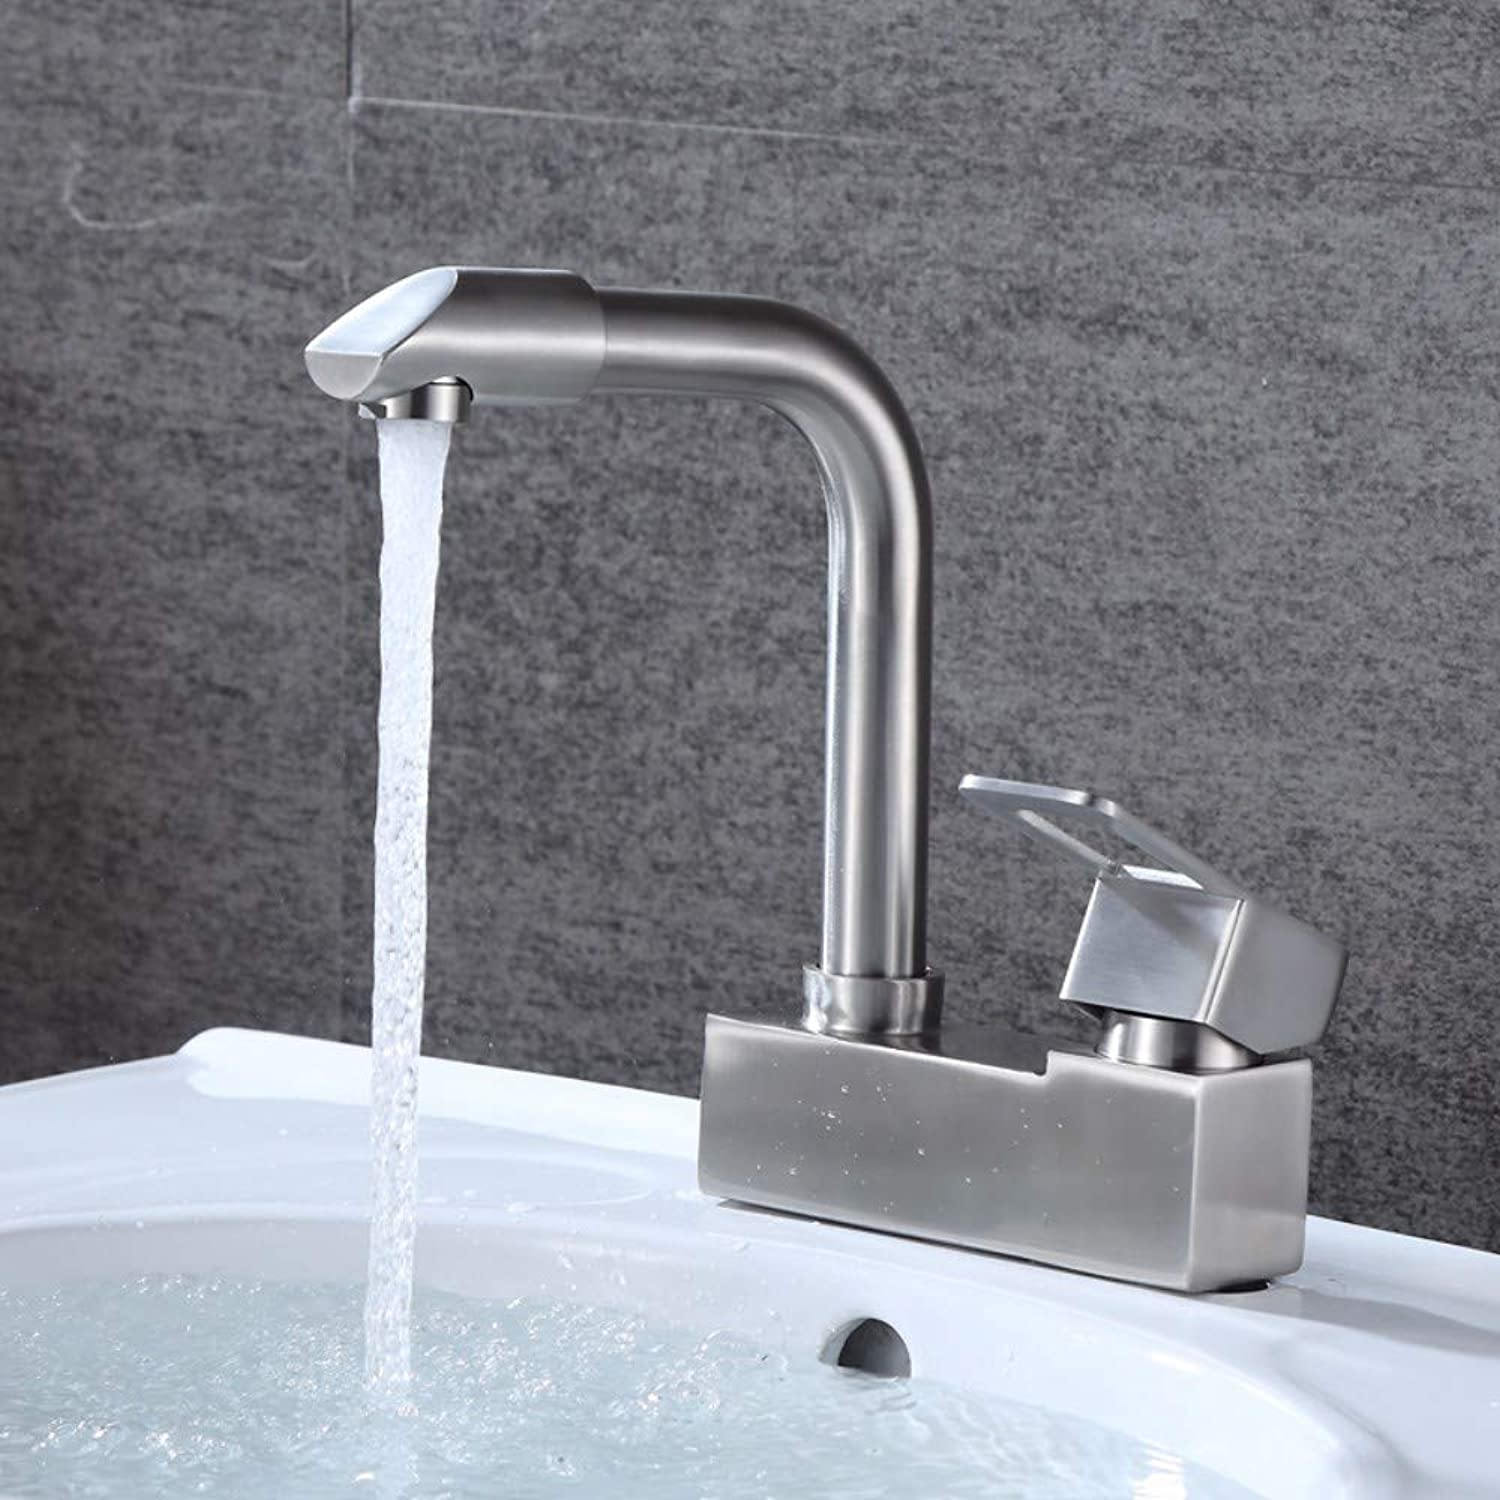 Basin Two Faucet Bathroom Wash Basin Sink Basin Hot and Cold Double Hole Single Turn Mouth Mixing Faucet